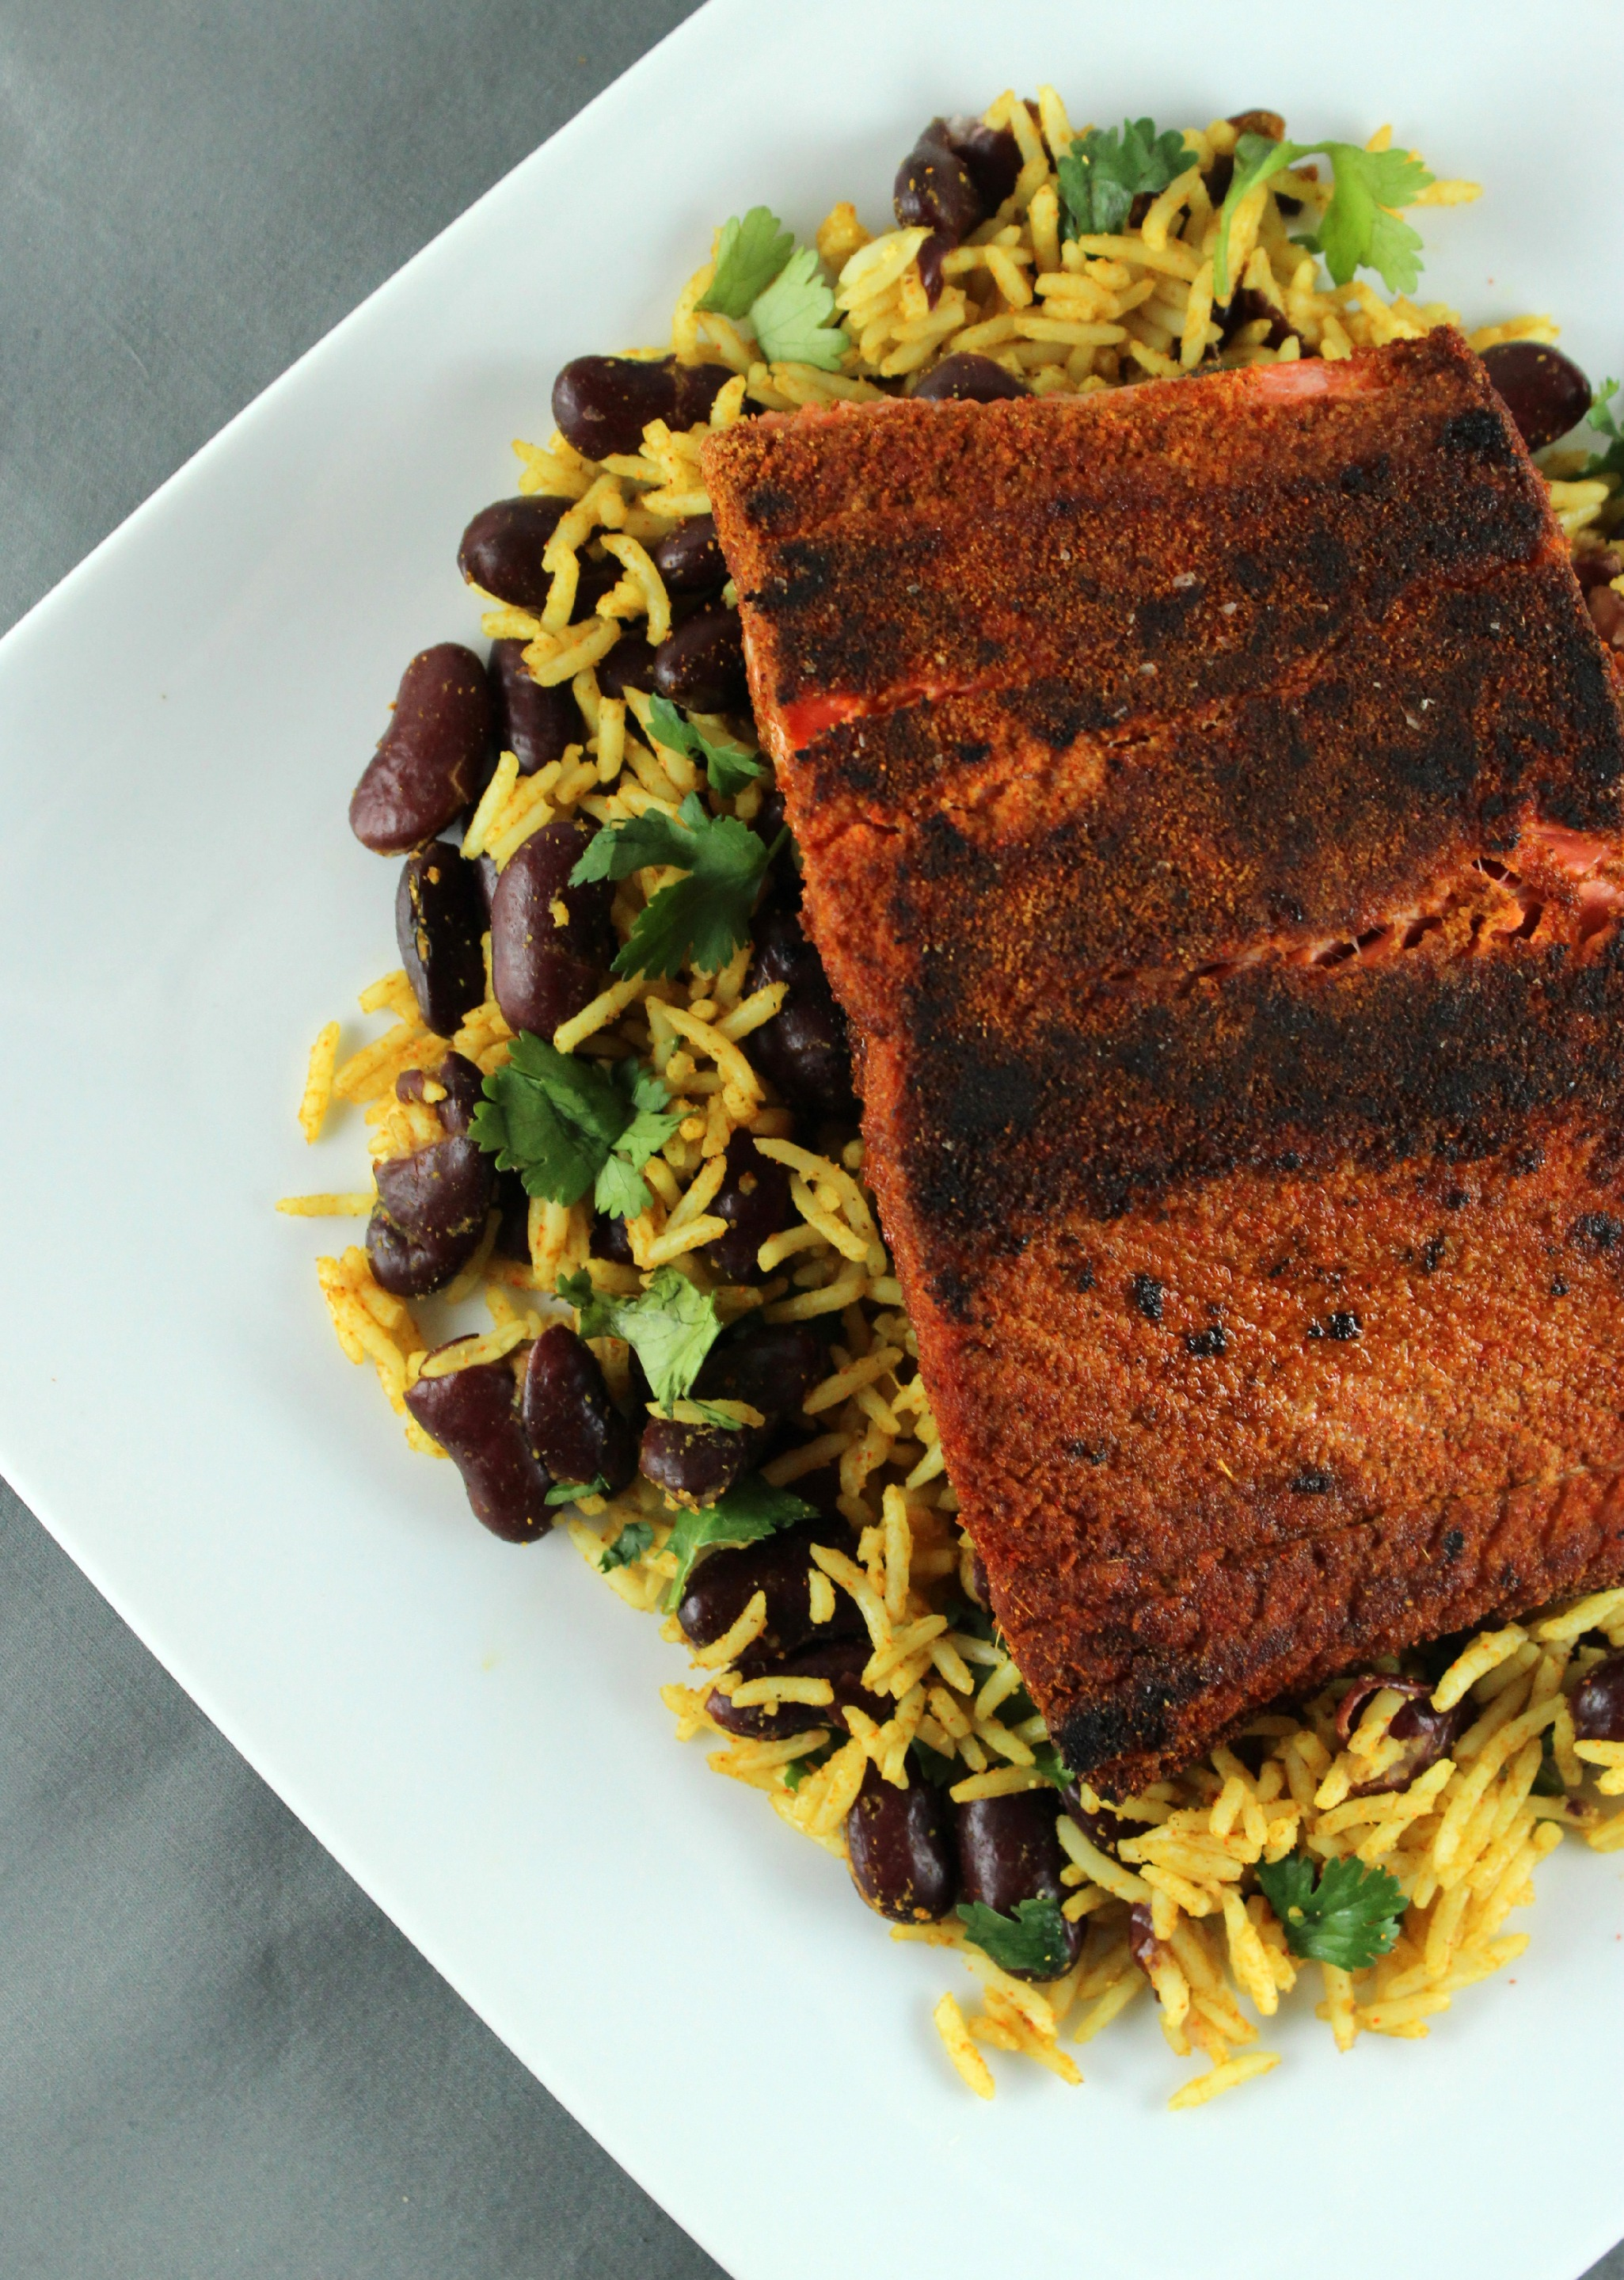 Date Night Delight: Blackened Salmon with Dark Red Kidney Bean Pilaf